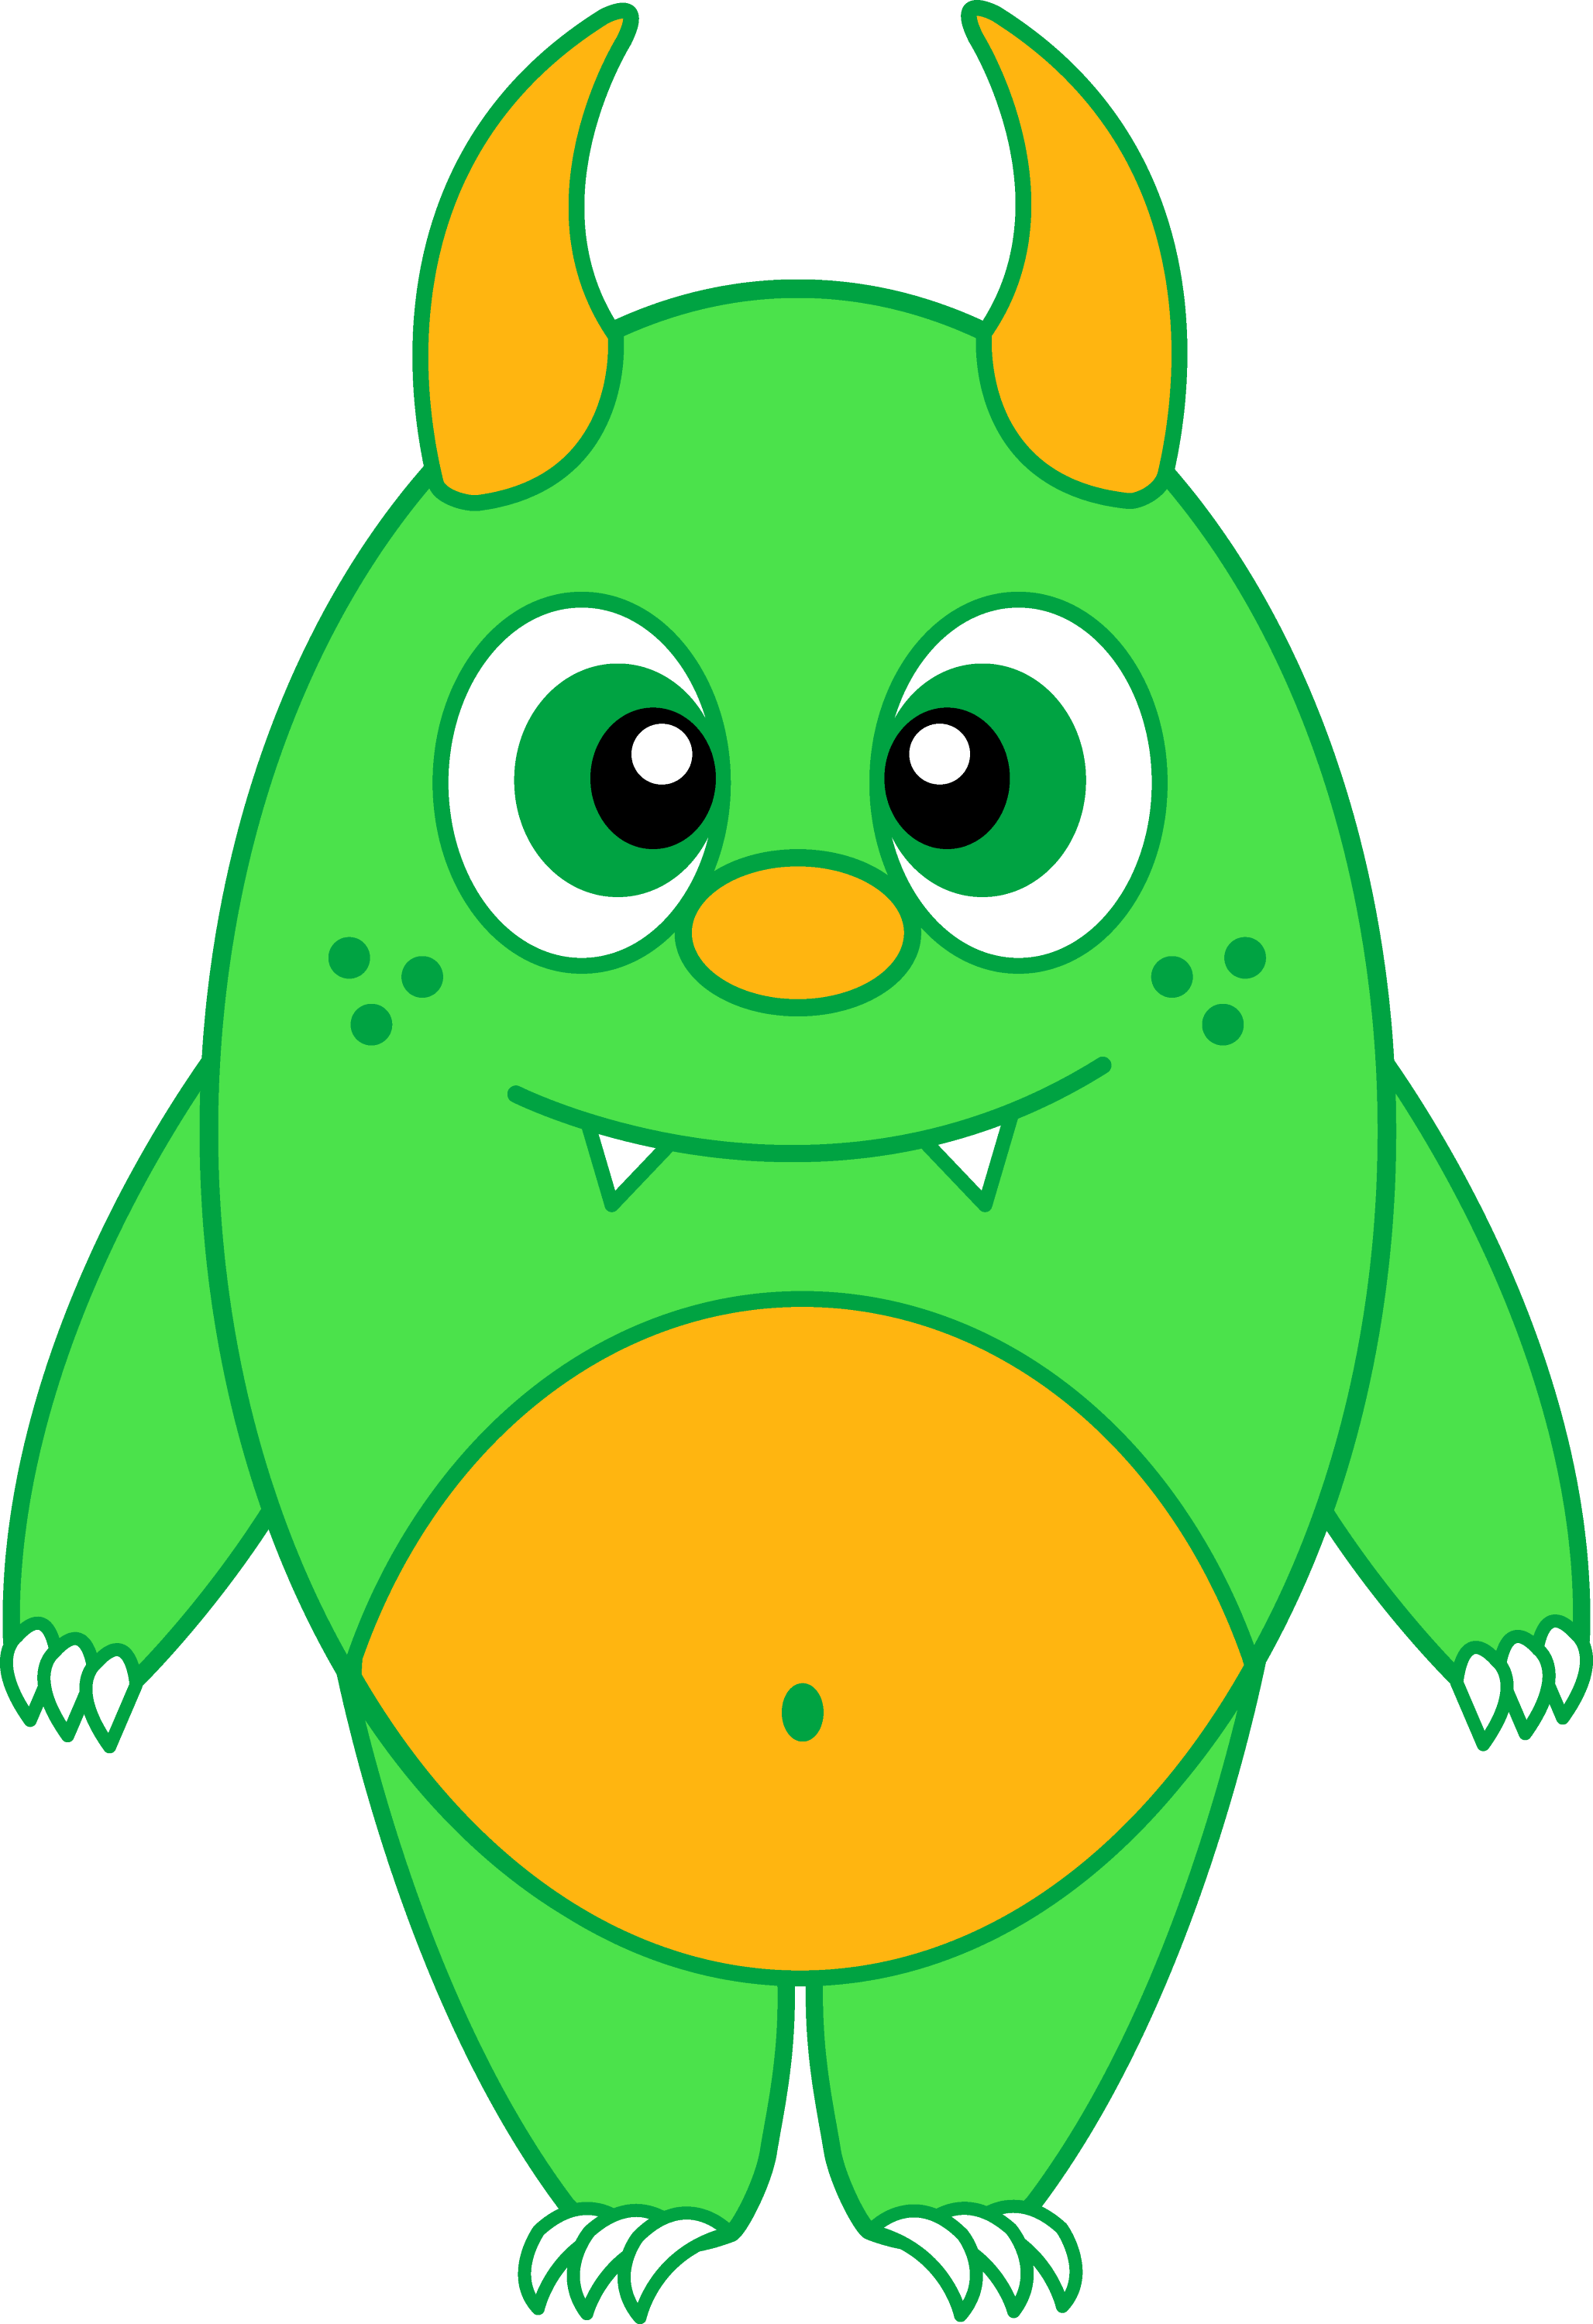 Silly Little Green Monster - Free Clip Art